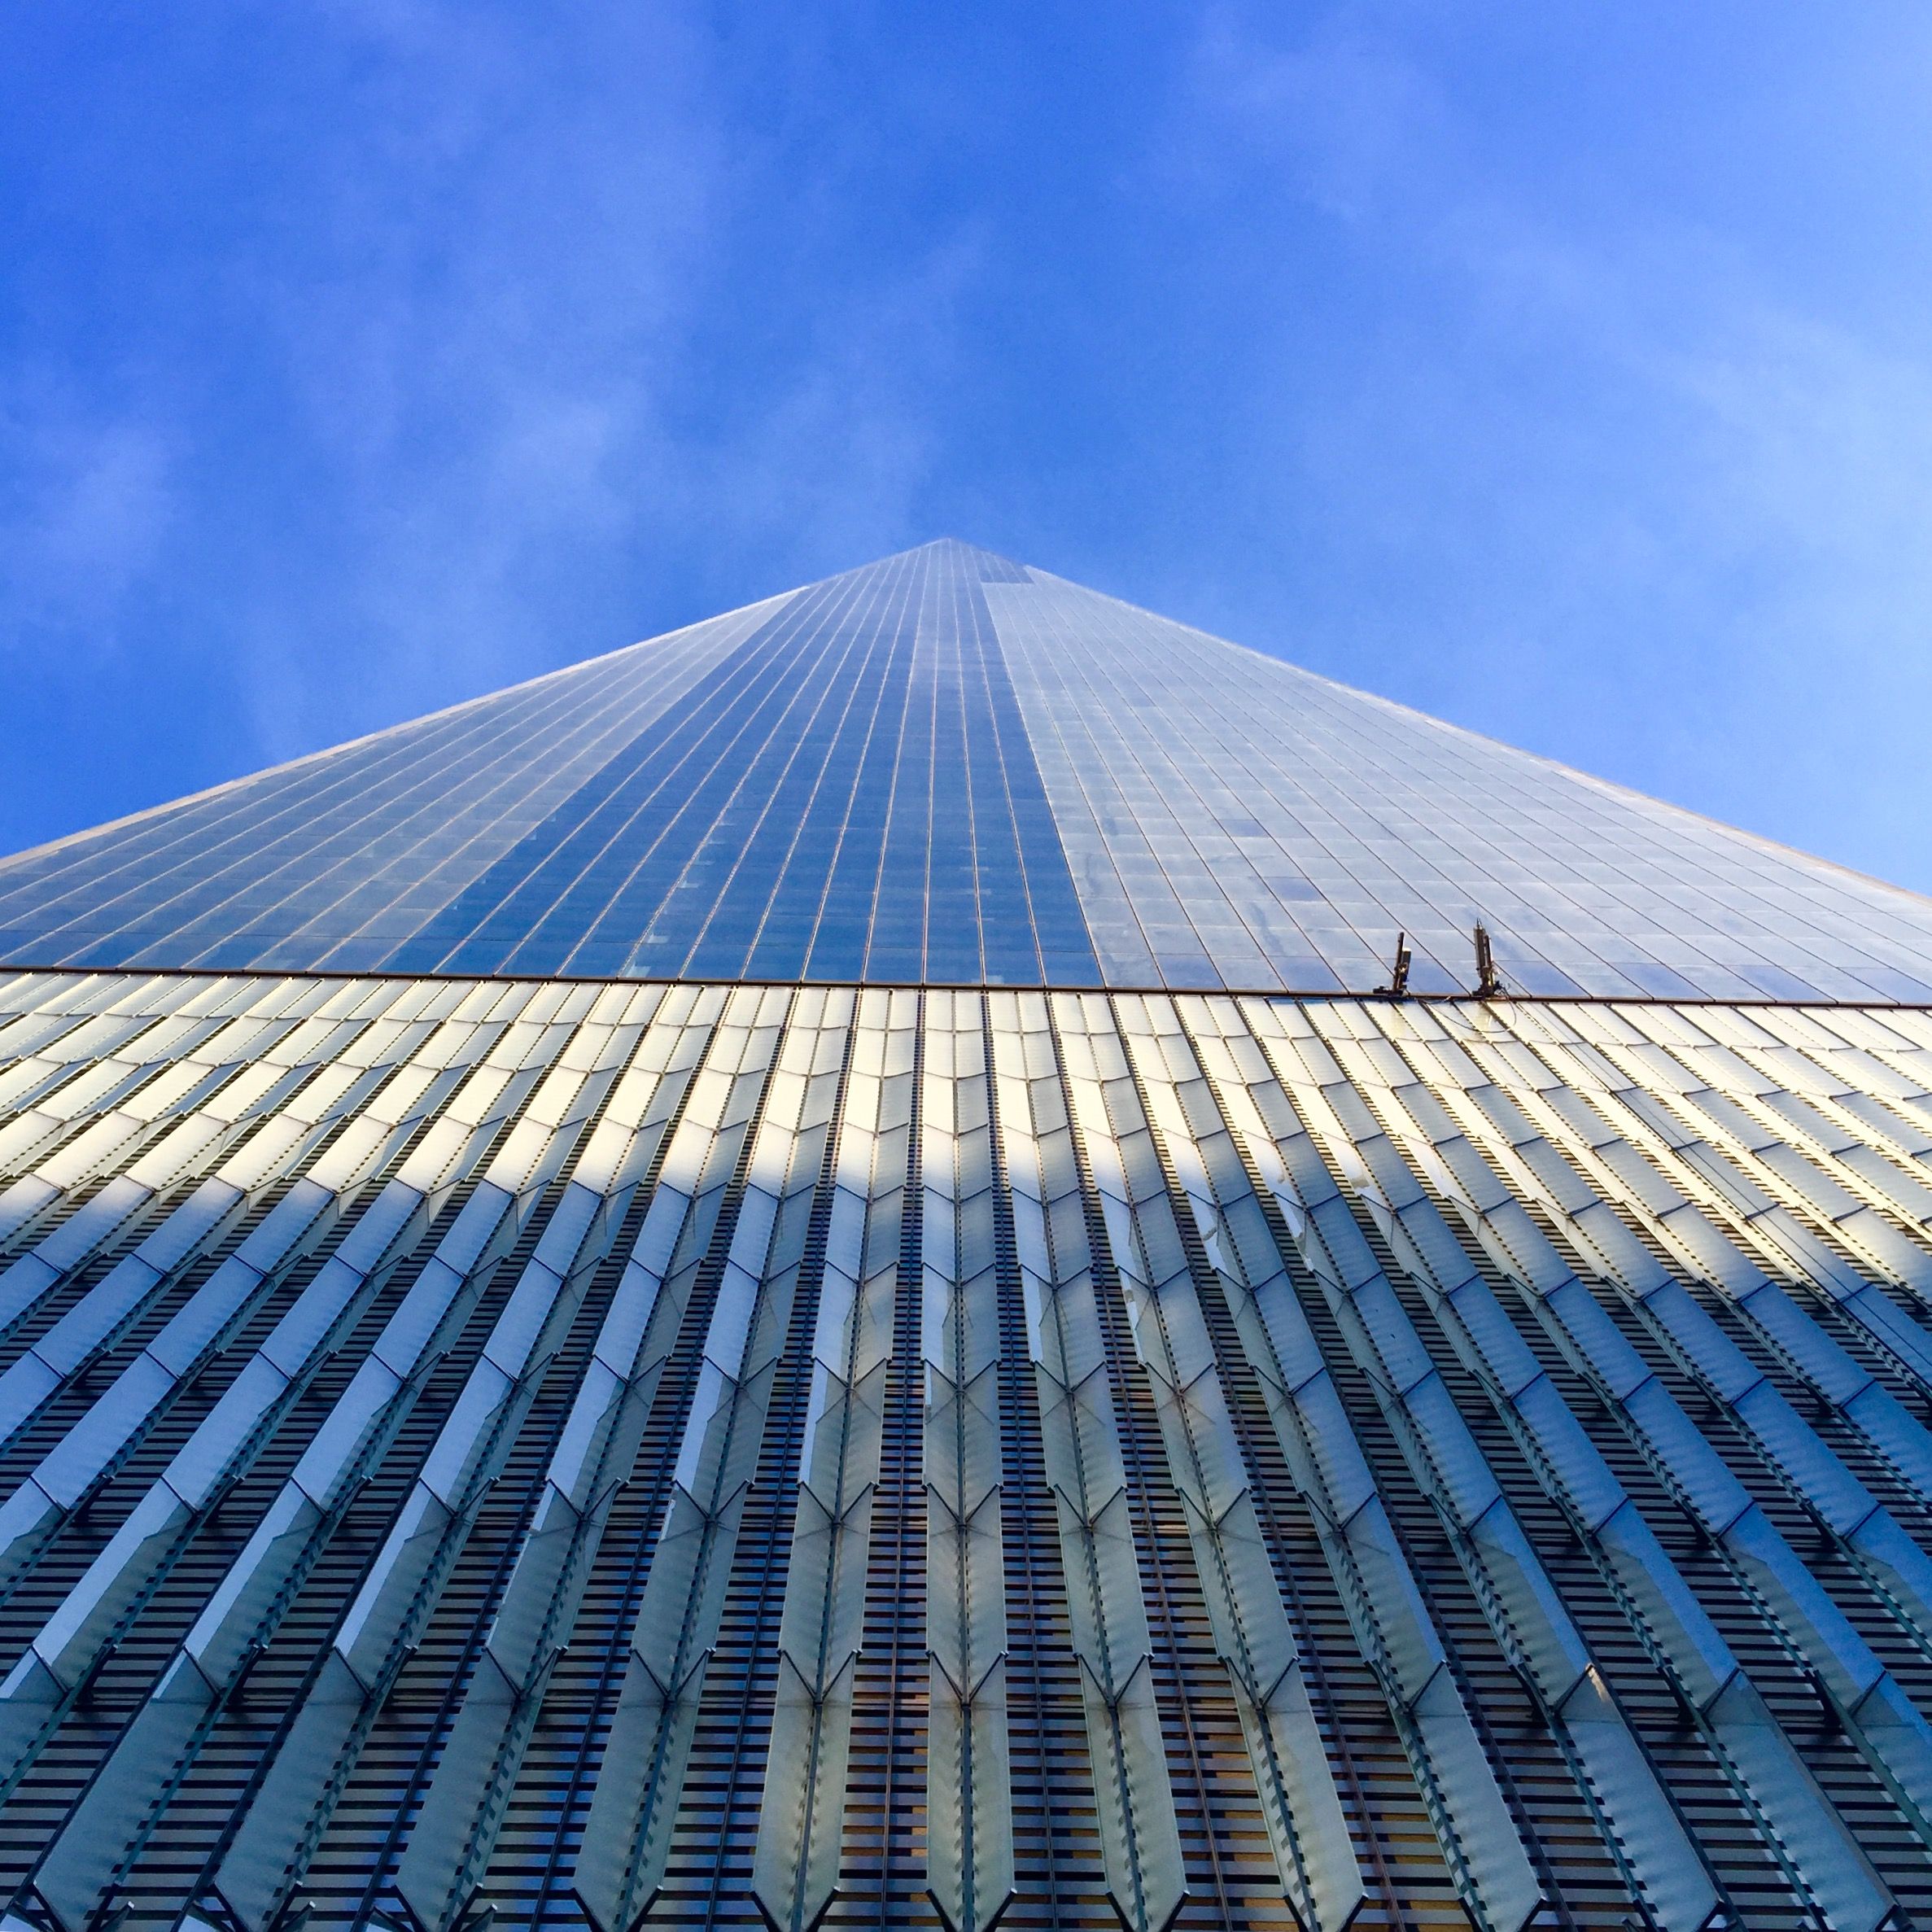 To infinity and beyond, the dizzying heights of the Freedom Tower